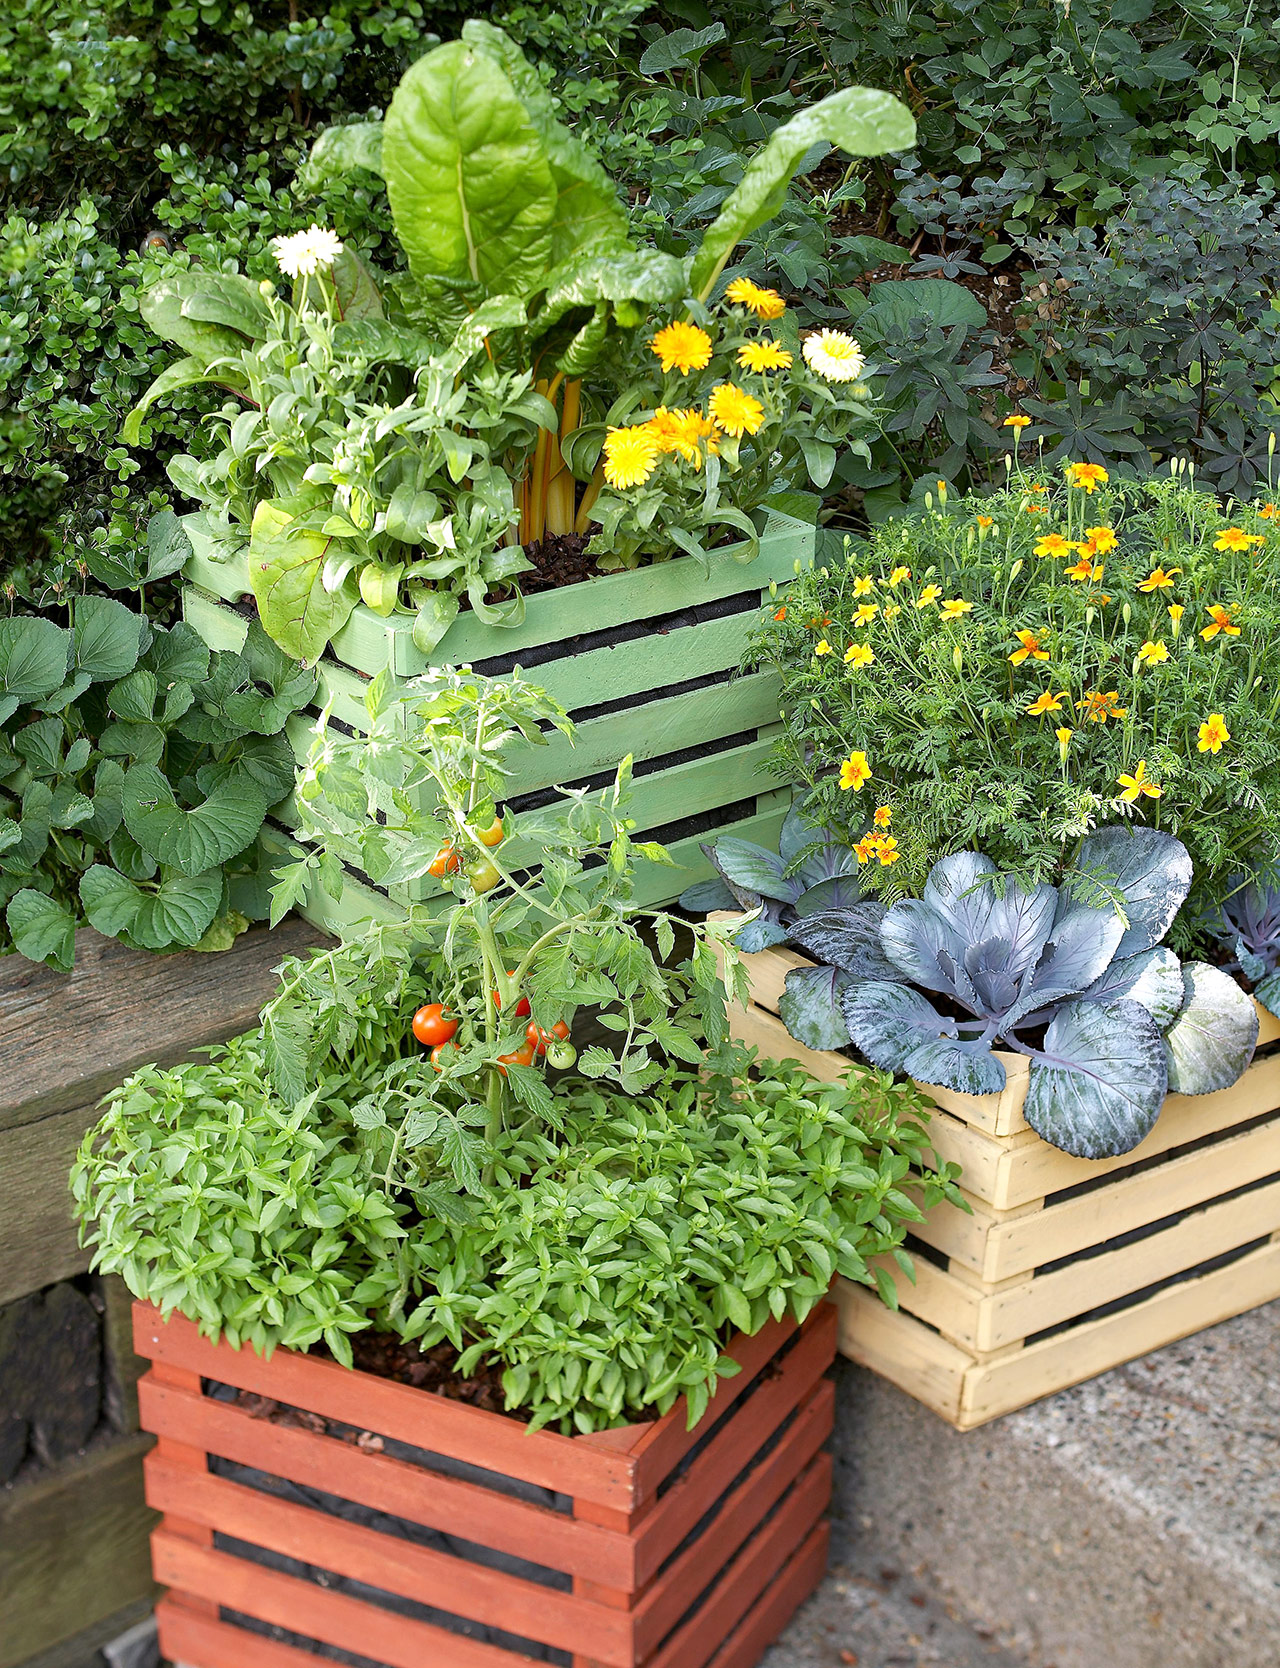 painted wooden boxes with vegetables